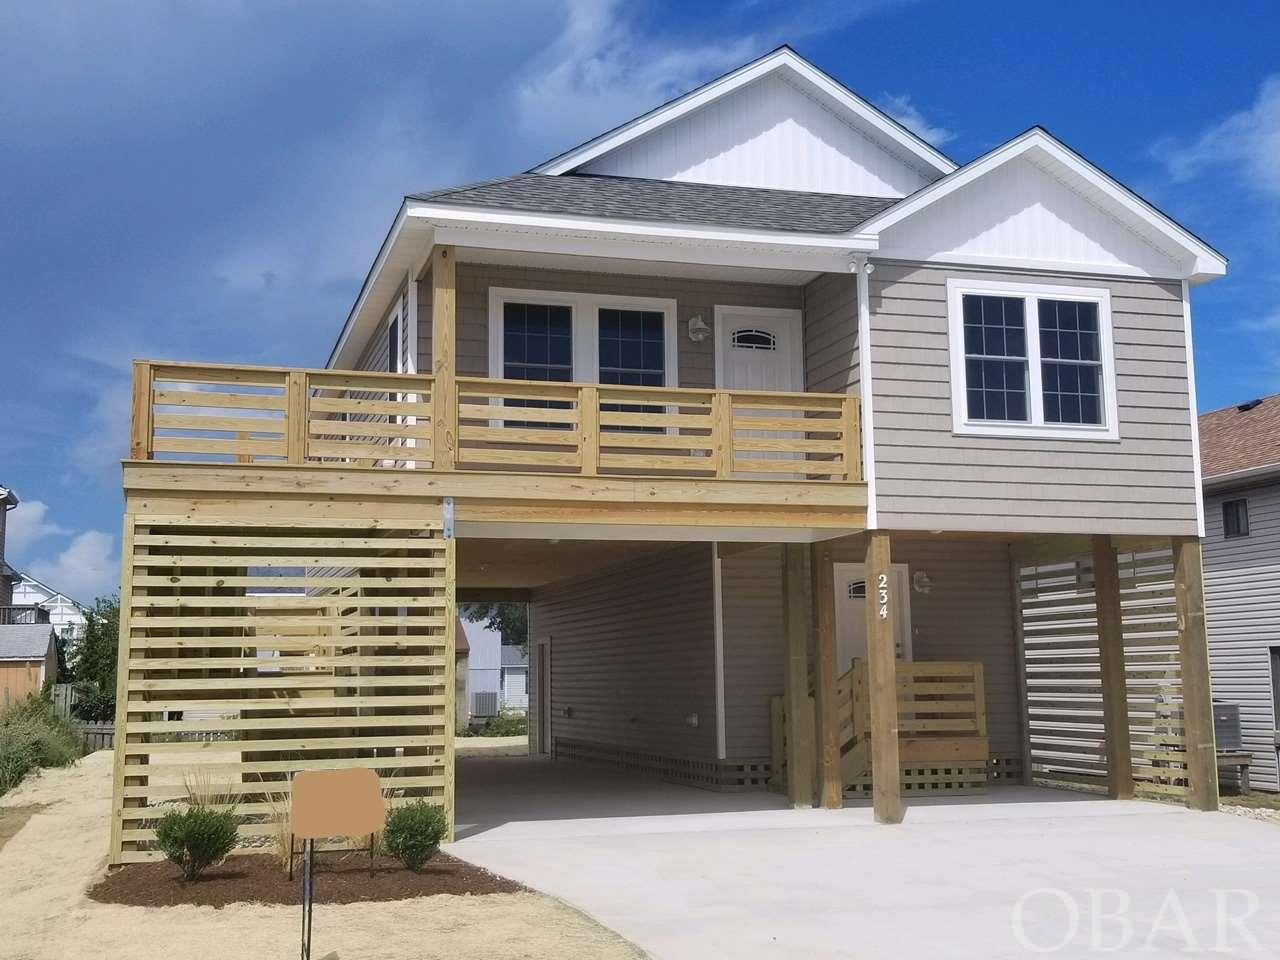 234 W Eden Street Lot 37 & 38 Outer Banks Home Listings - Holleay Parcker - Spinnaker Realty Outer Banks (OBX) Real Estate